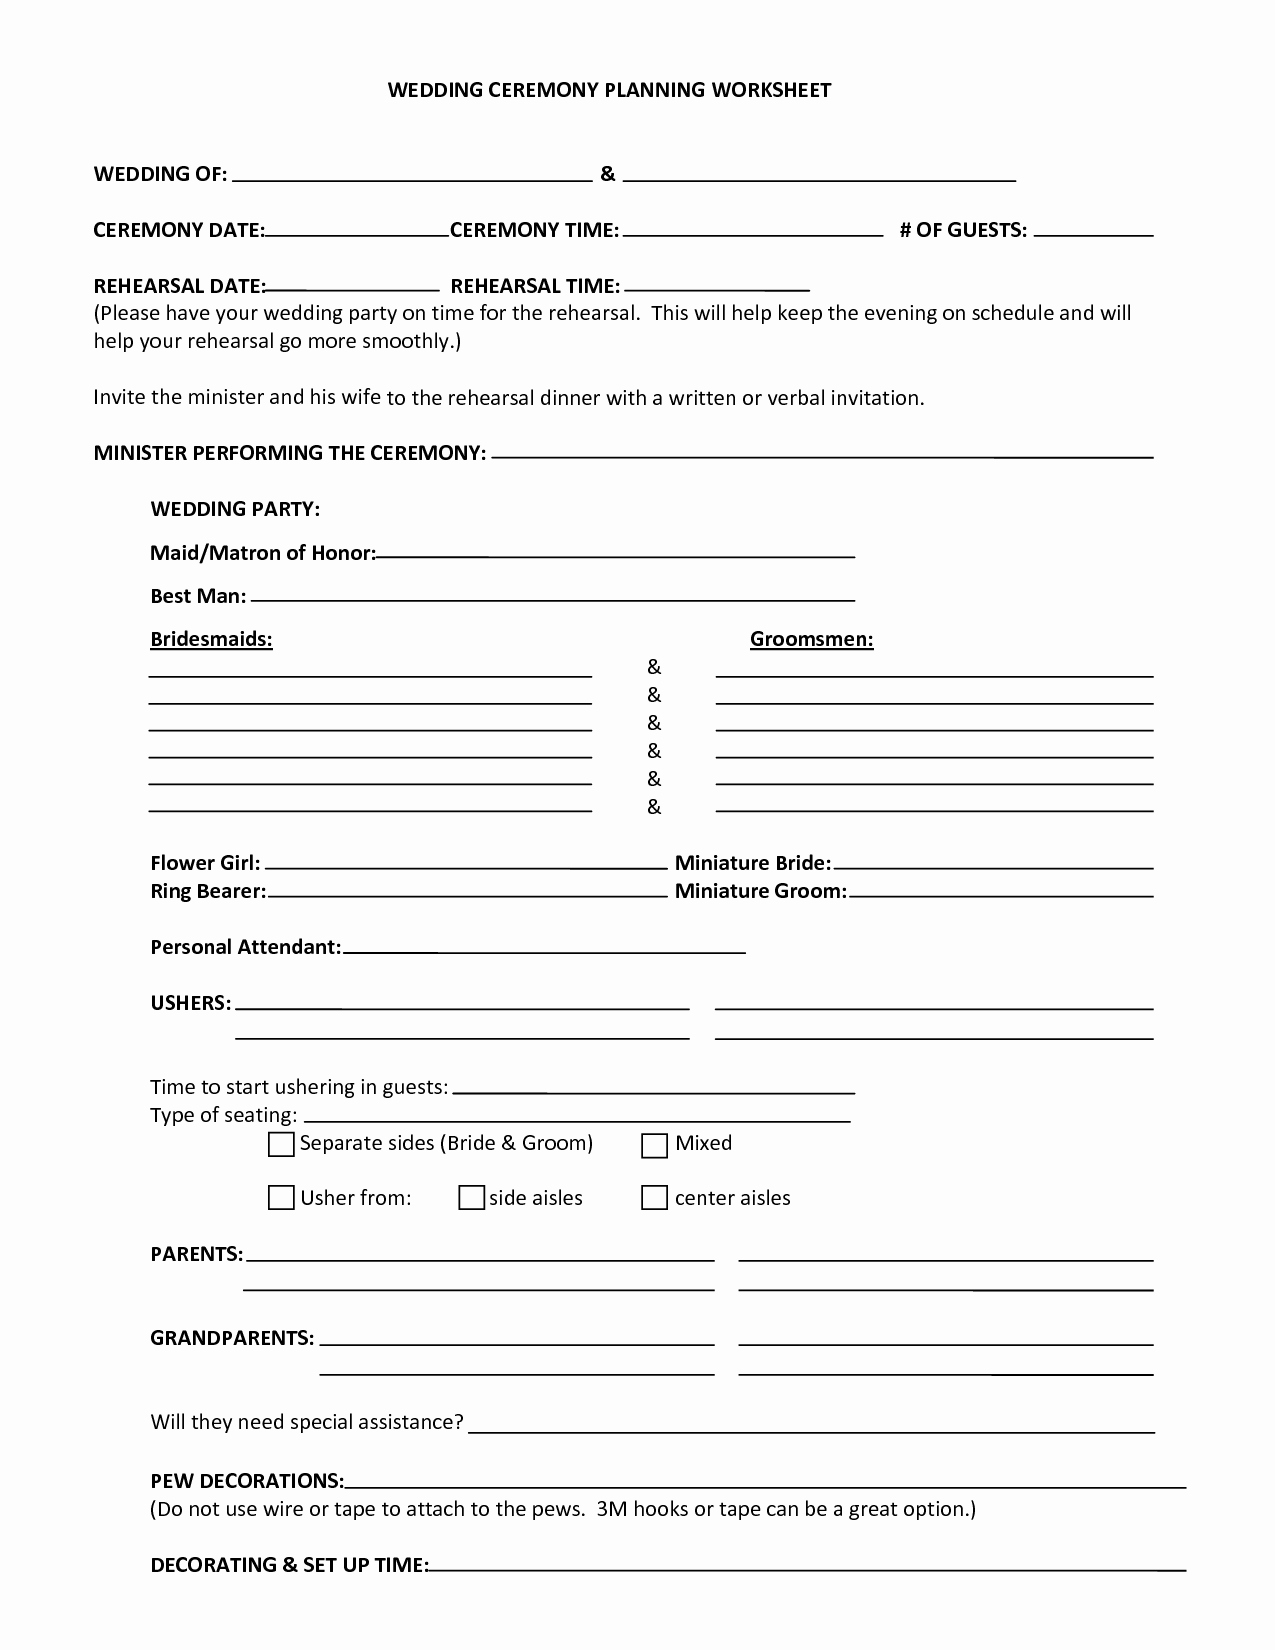 Worksheet Wedding Worksheet Hunterhq Free Printables